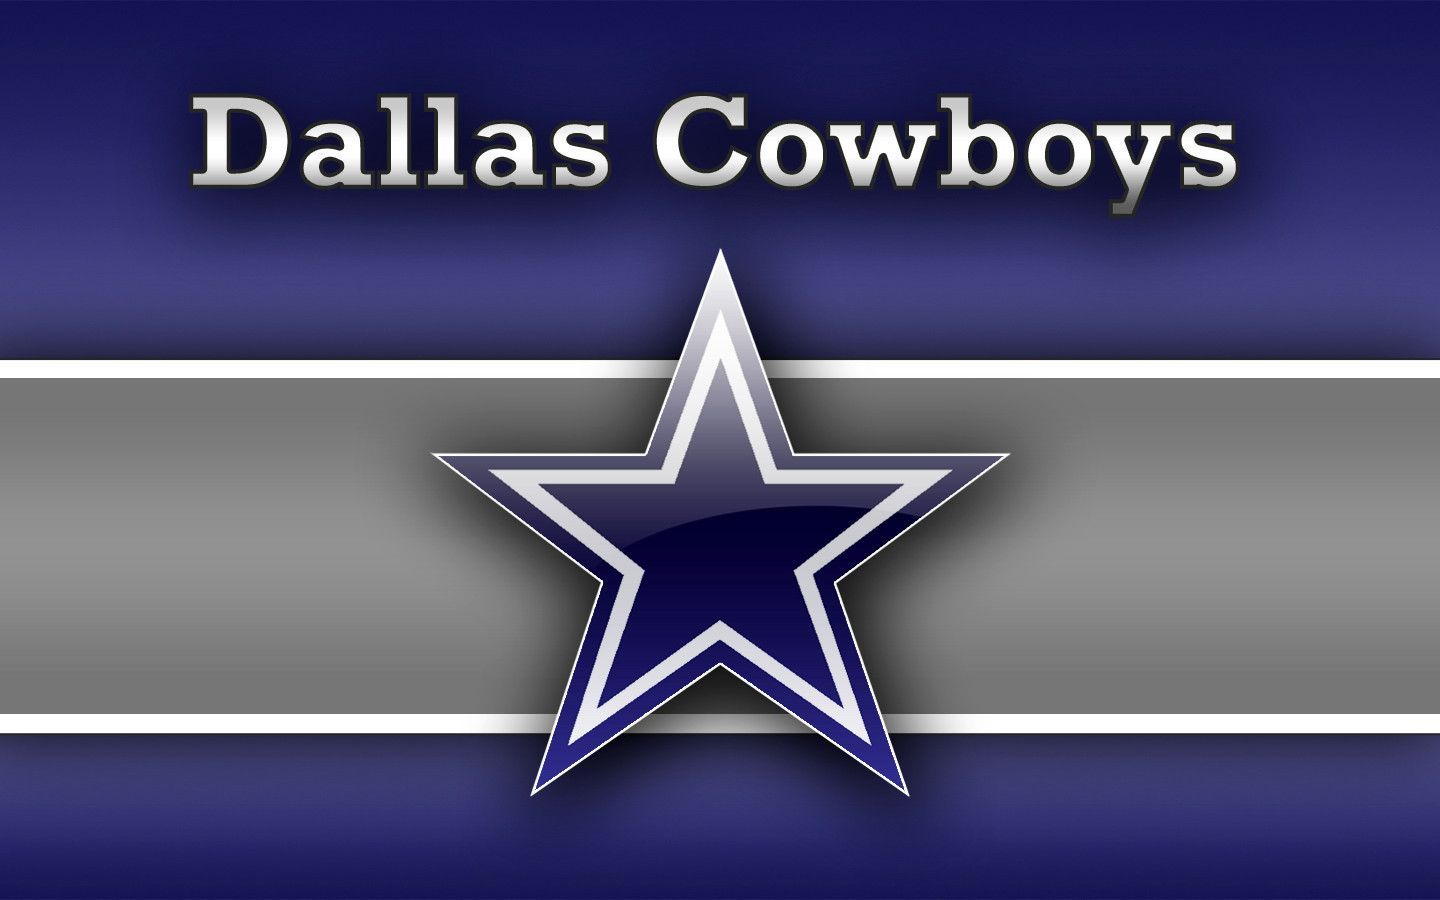 Dallas cowboys wallpaper for cell phones 1440x900